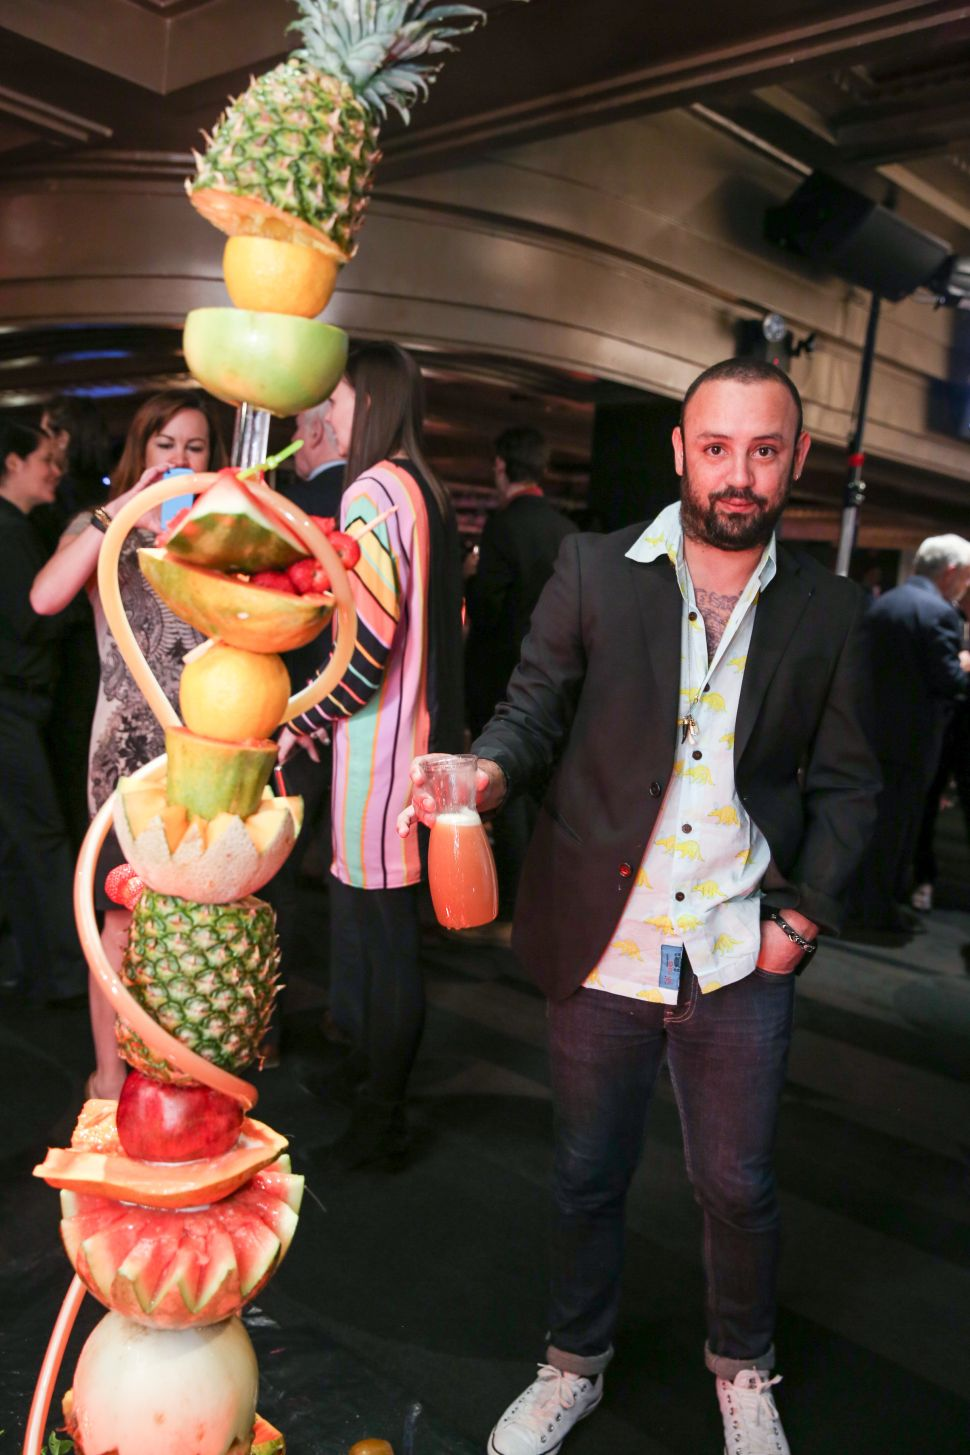 About That Rum Punch-Spewing Sculpture Made of Fruit at the SculptureCenter Gala